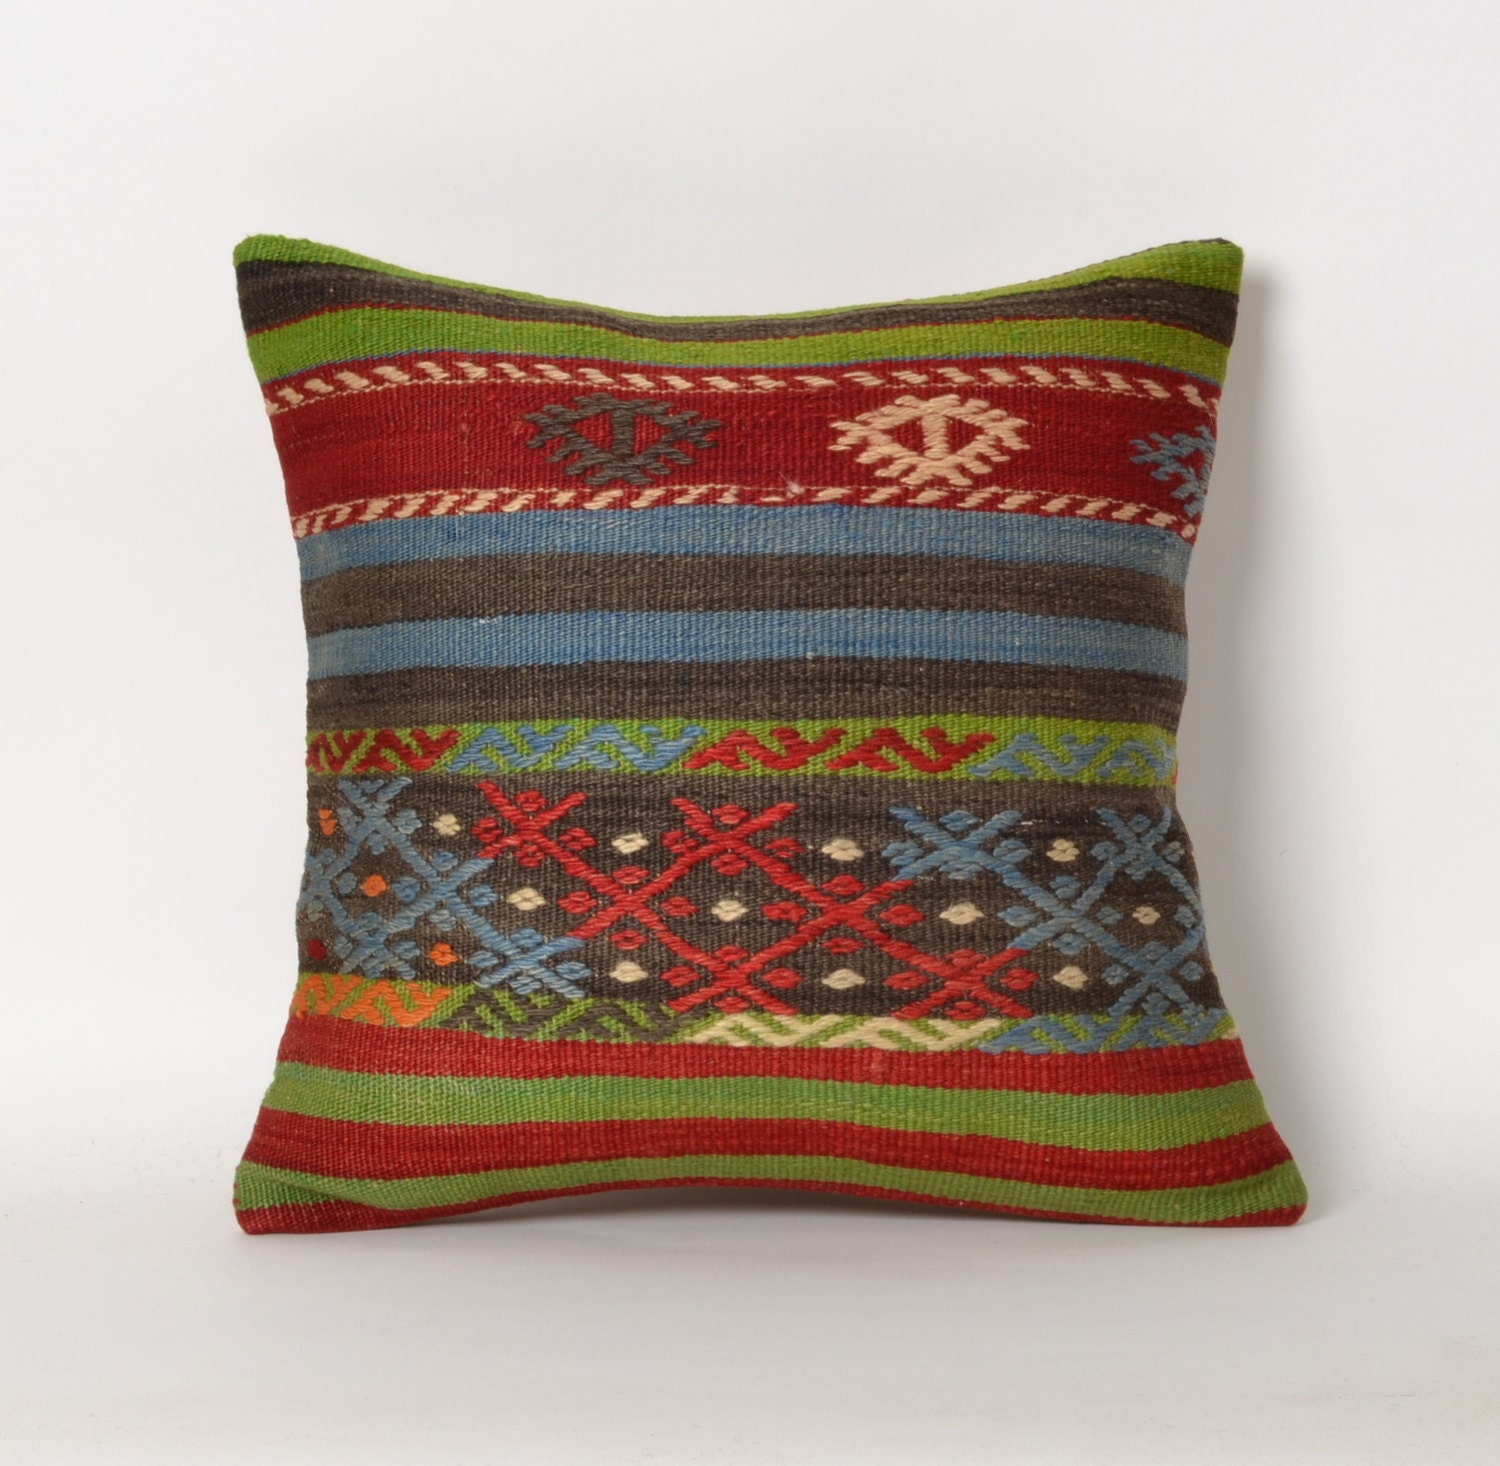 Moroccan Pillow Vintage Kilim Pillow Couch Pillow Moroccan